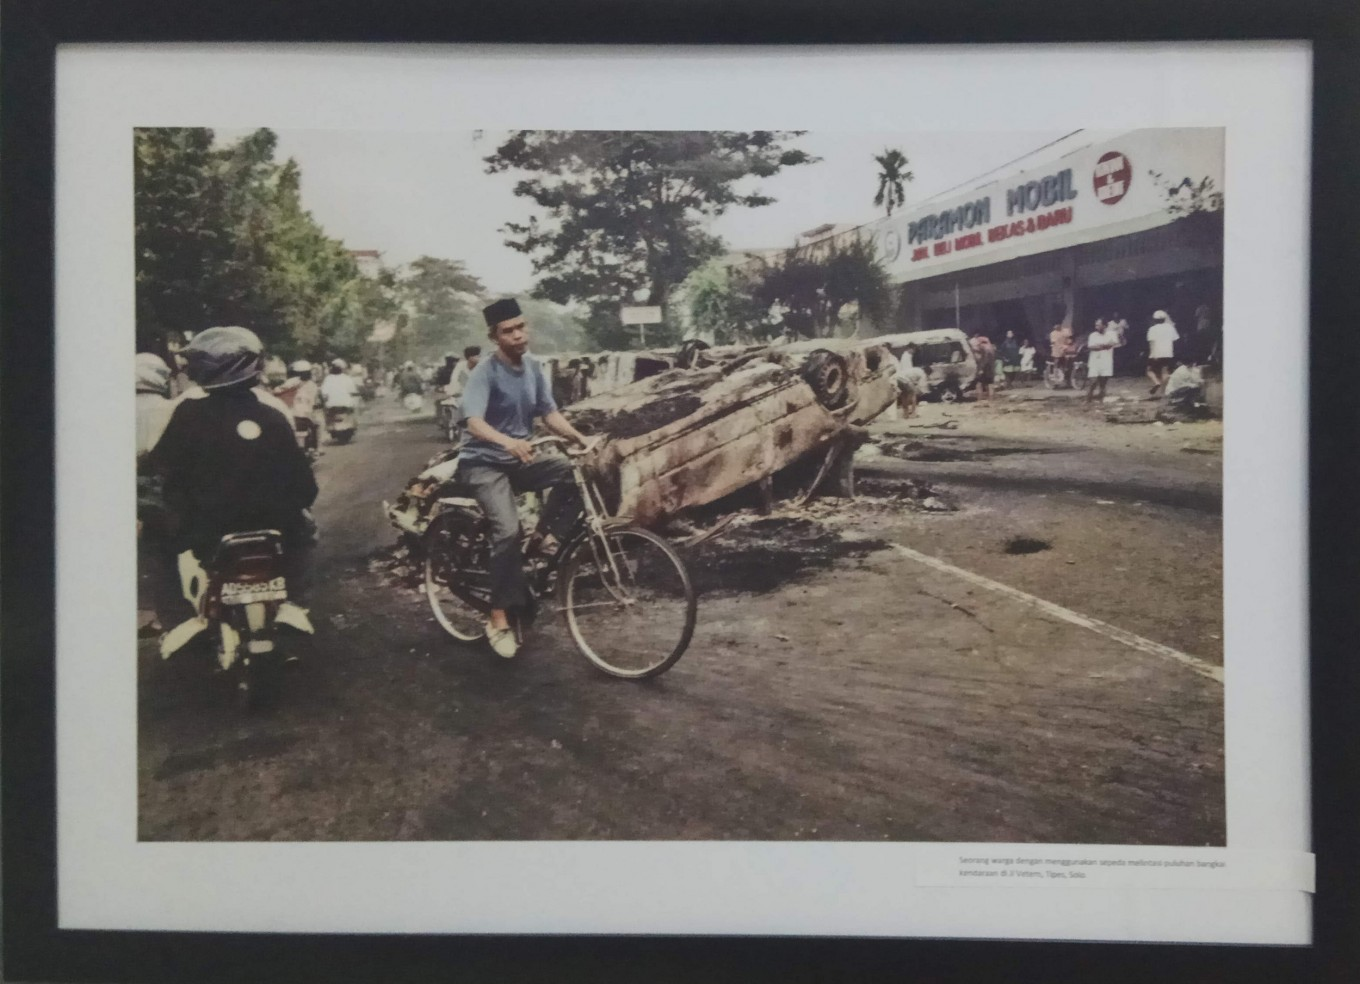 Surakarta after the riot.